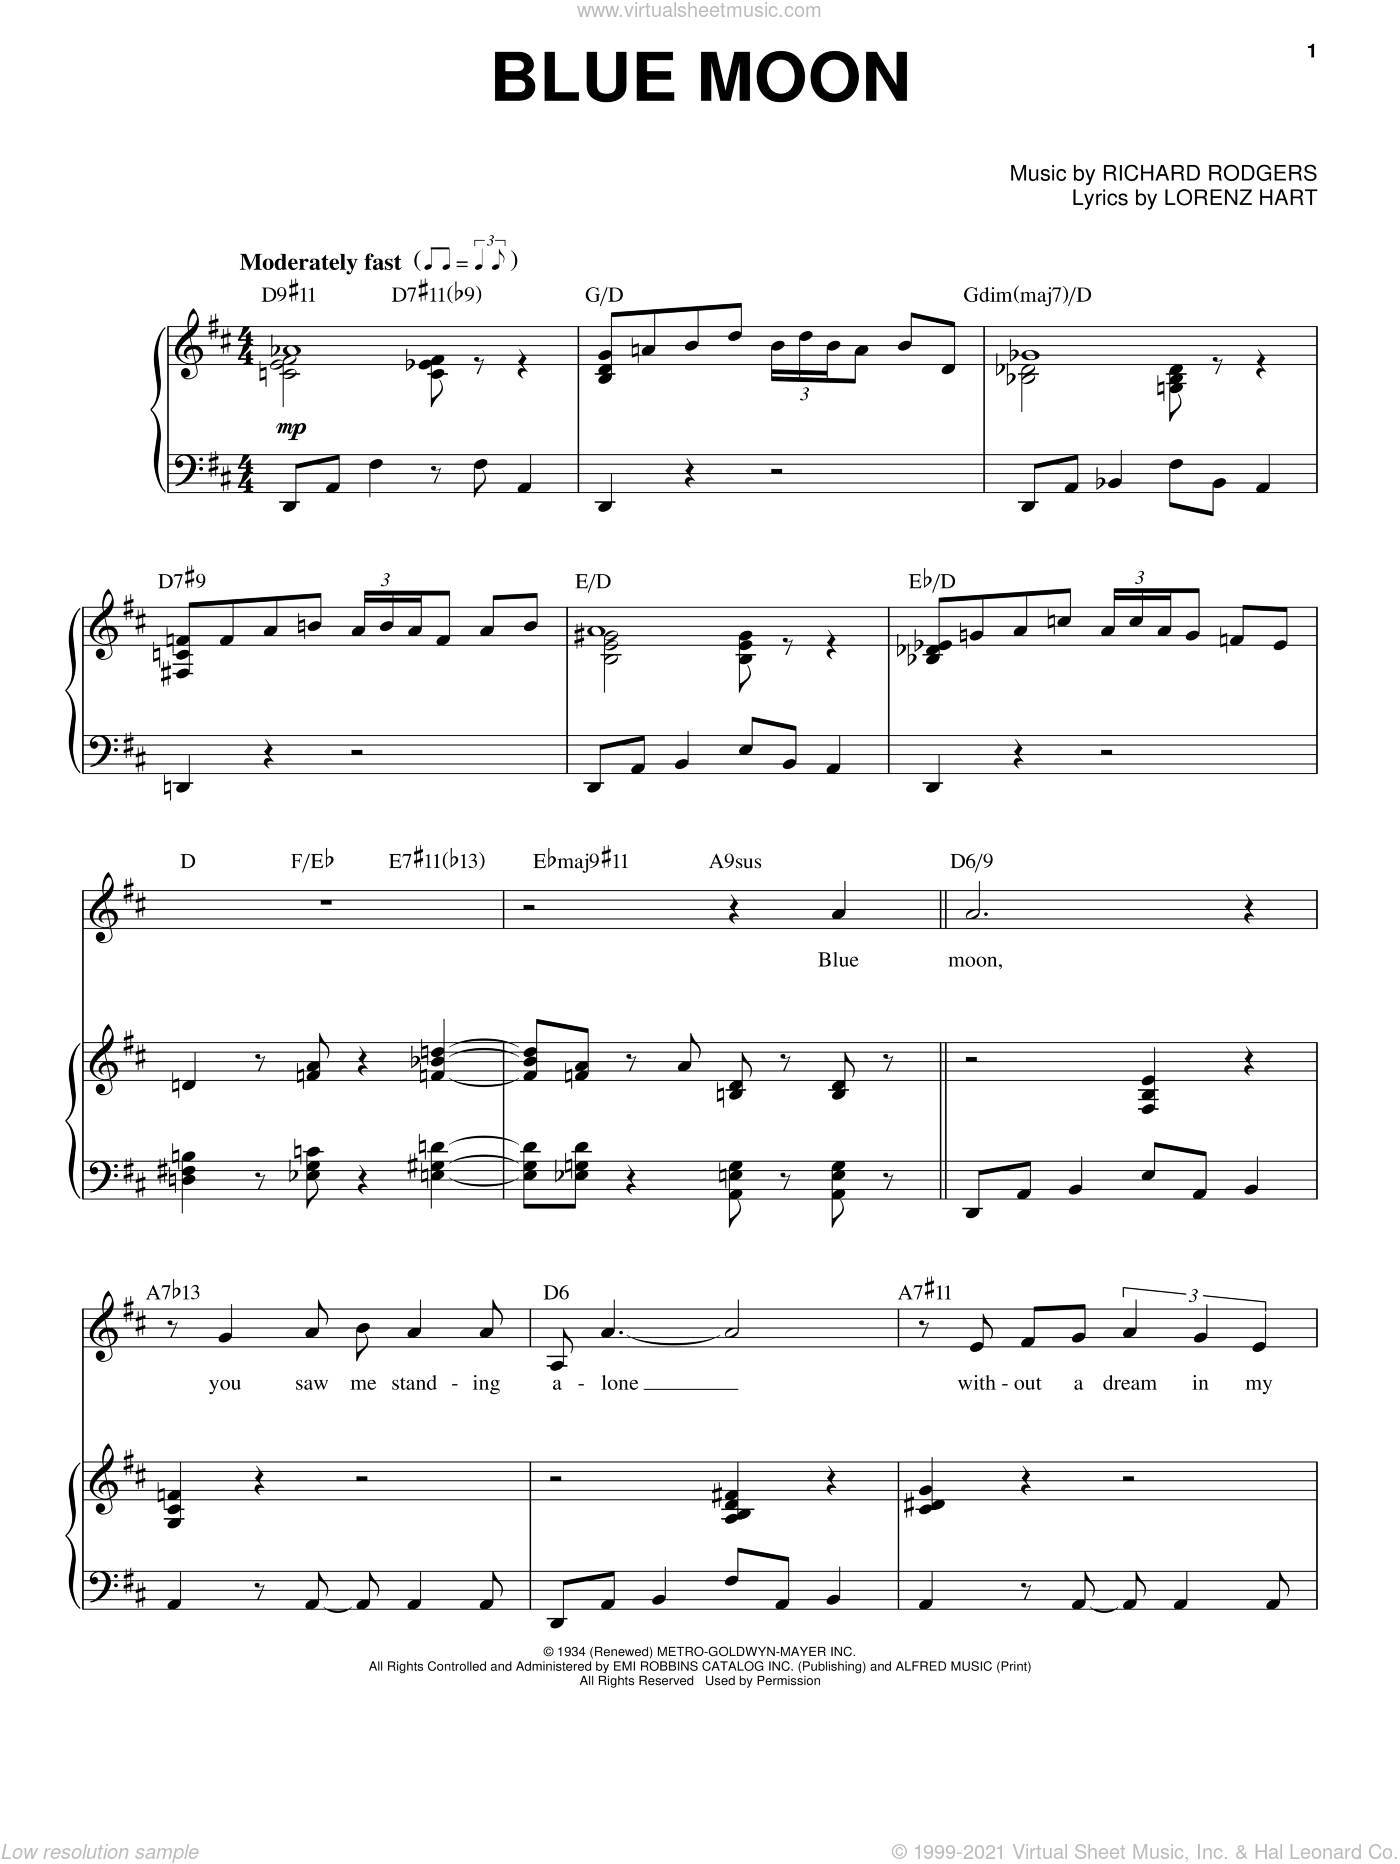 Blue Moon sheet music for voice and piano by Richard Rodgers, Elvis Presley, Frank Sinatra, The Marcels and Lorenz Hart. Score Image Preview.